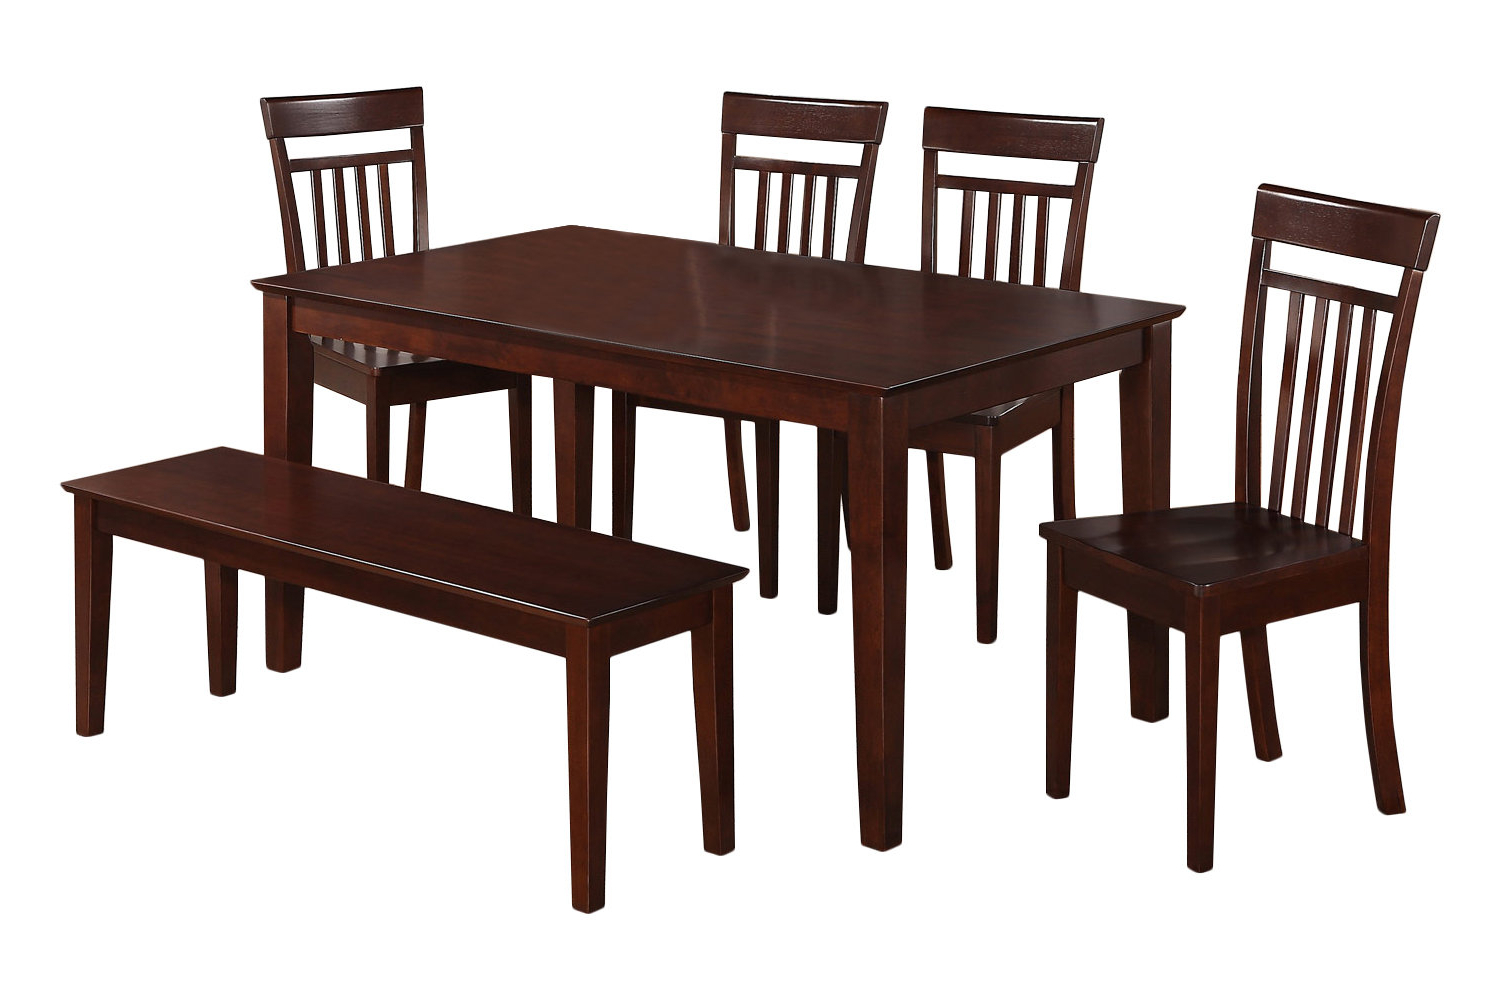 Best And Newest Smyrna 3 Piece Dining Sets Inside Charlton Home Smyrna 6 Piece Dining Set & Reviews (View 4 of 25)